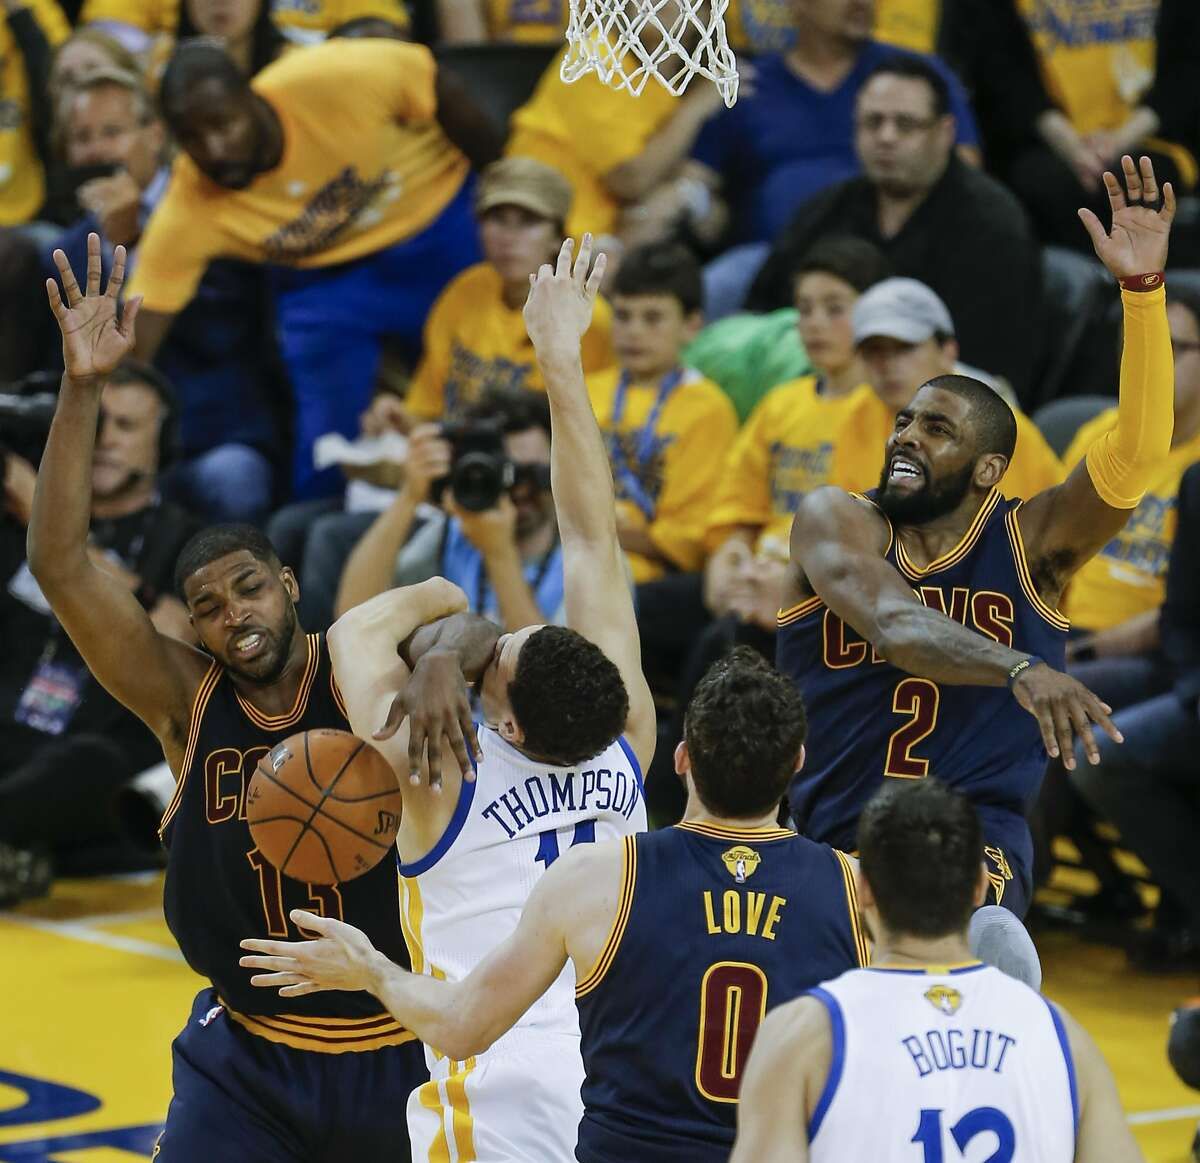 Cleveland Cavaliers' Tristan Thompson and Golden State Warriors' Klay Thompson fight for a rebound in the third quarter during Game 1 of the NBA Finals at Oracle Arena on Thursday, June 2, 2016 in Oakland, Calif.